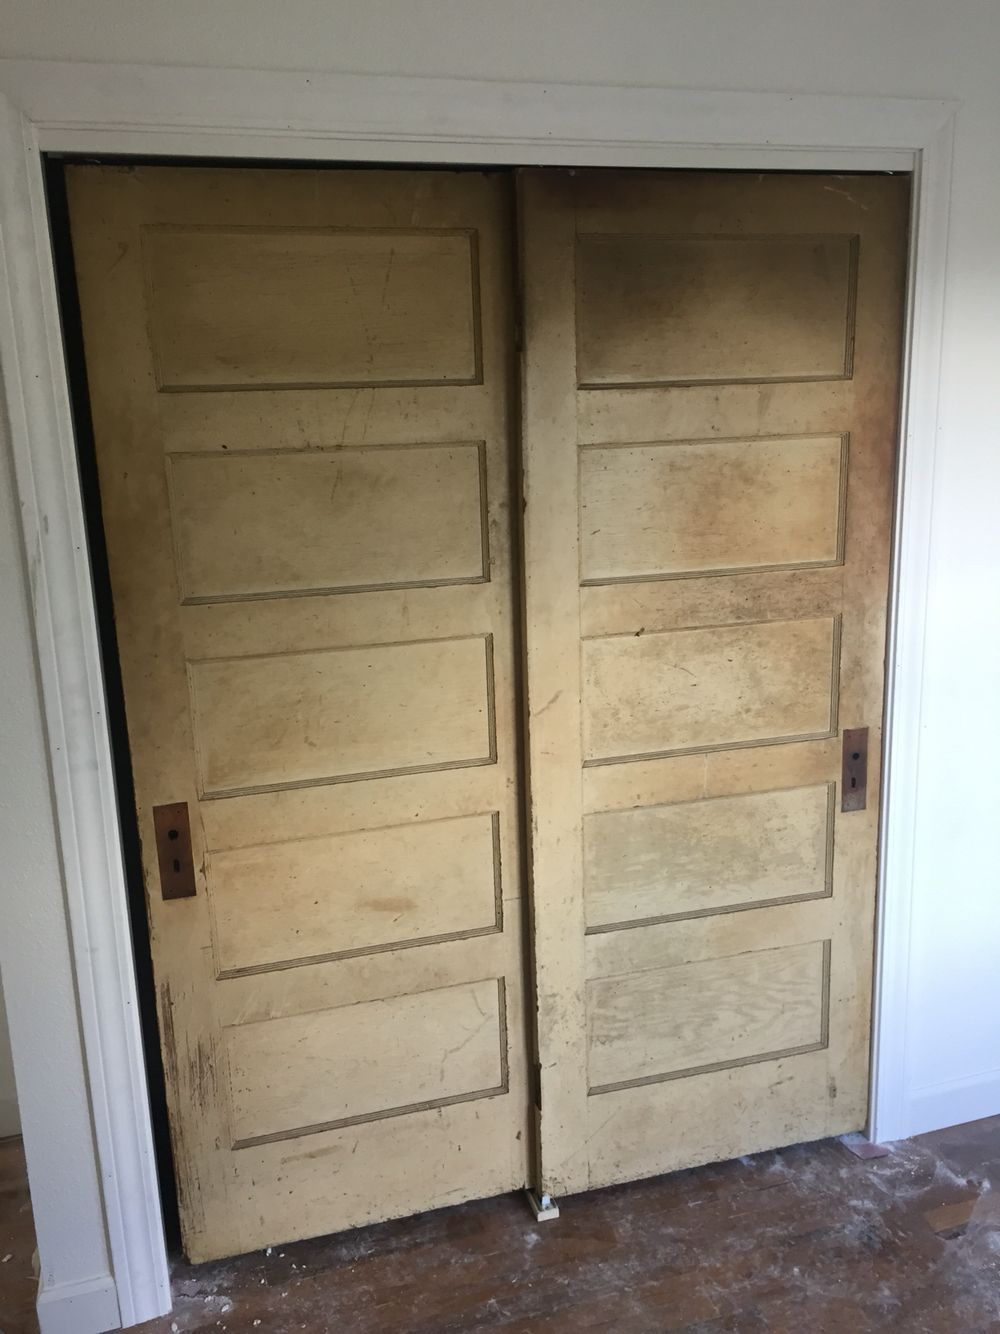 Cassie Used These Old 5 Panel Doors To Make Sliding Closet Doors